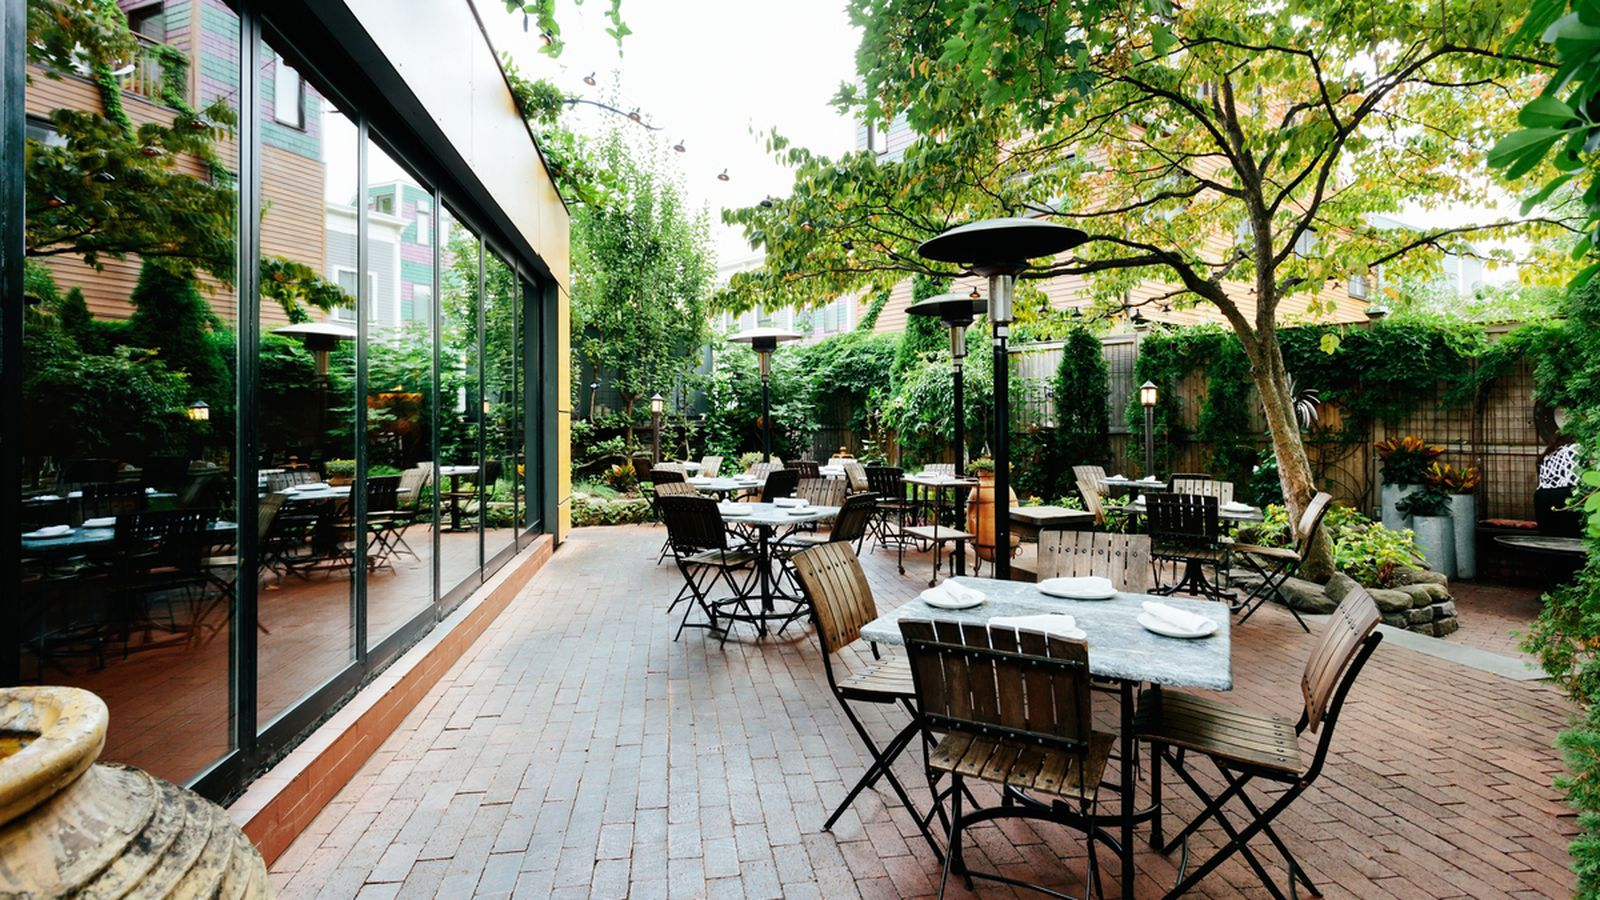 Outdoor Dining The Boston Outdoor Dining Guide Eater Boston